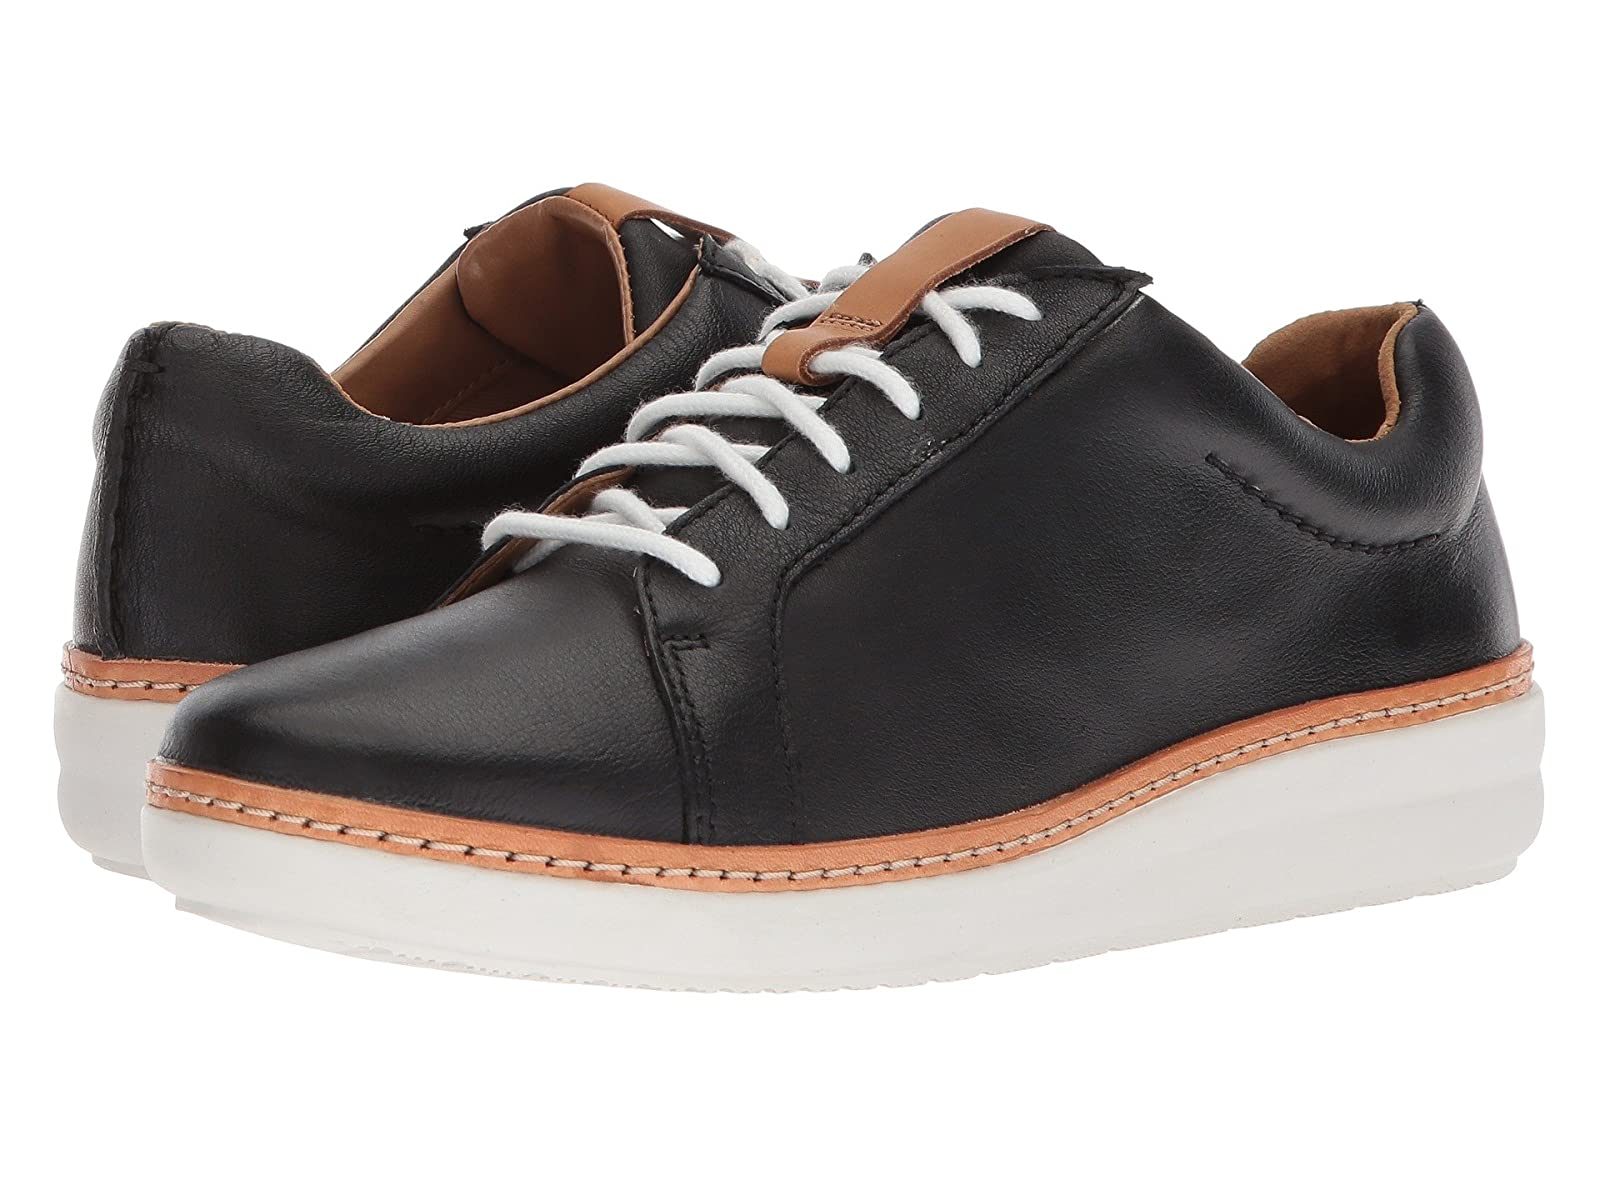 Clarks Amberlee RosaCheap and distinctive eye-catching shoes